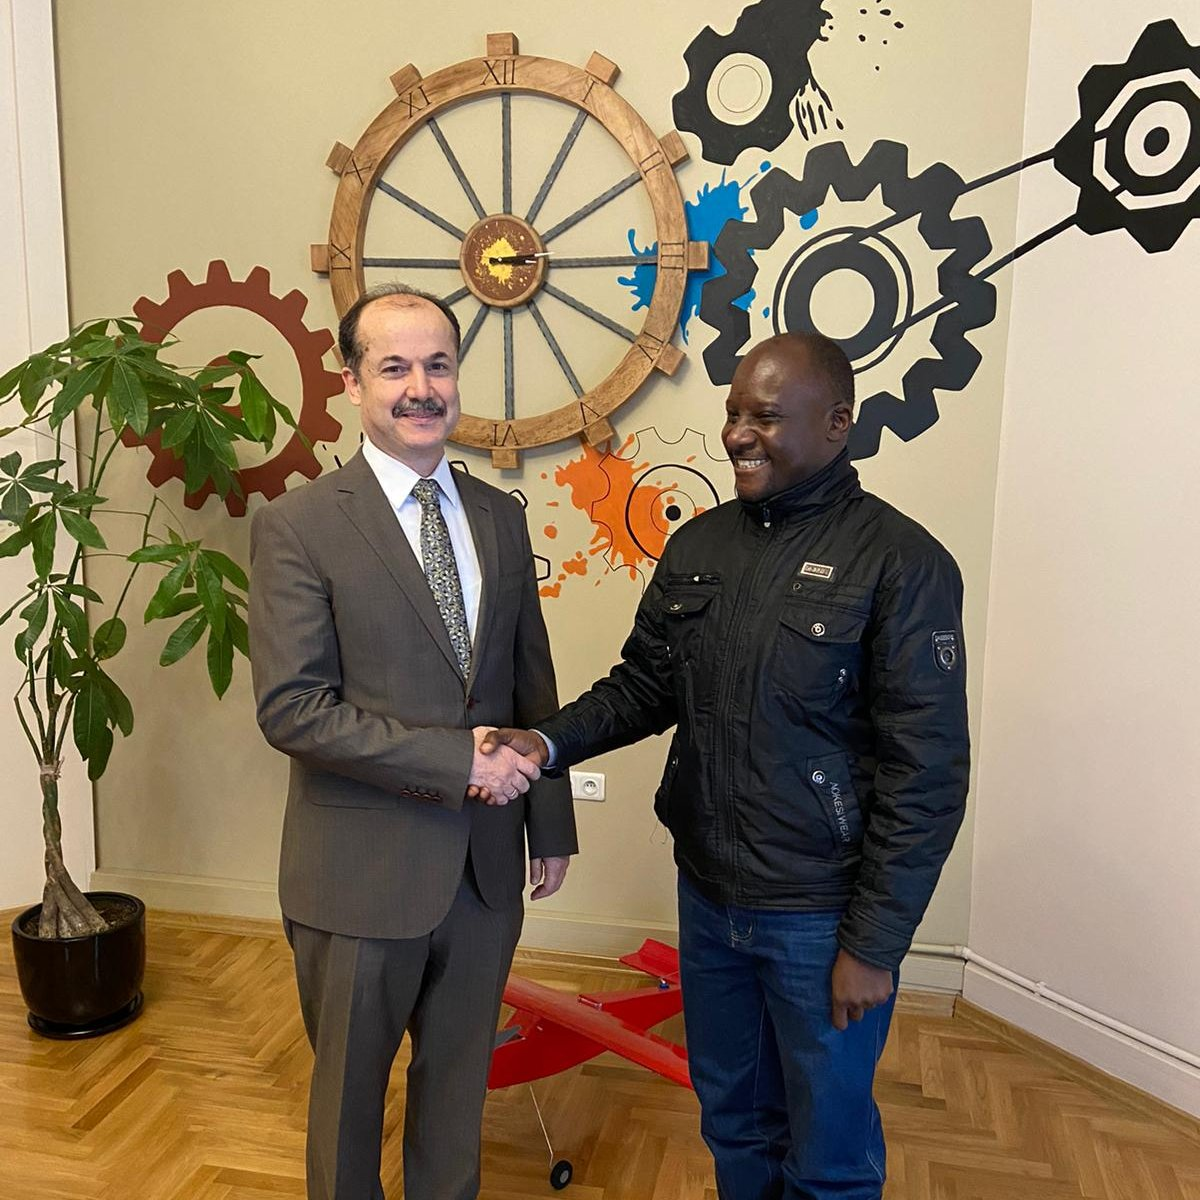 Within the context of @TABIP_EN, under the auspices of @tcbestepe and conducted by @yeeorgtr, president of the Yunus Emre Institute, Prof. Dr. @serefatess, held a meeting with Dr. Merit Kabugo from @MakerereU, regarding projects & collaborations at Ankara. #StayEmpoweredWithTABIP pic.twitter.com/J1zHOIKbi7